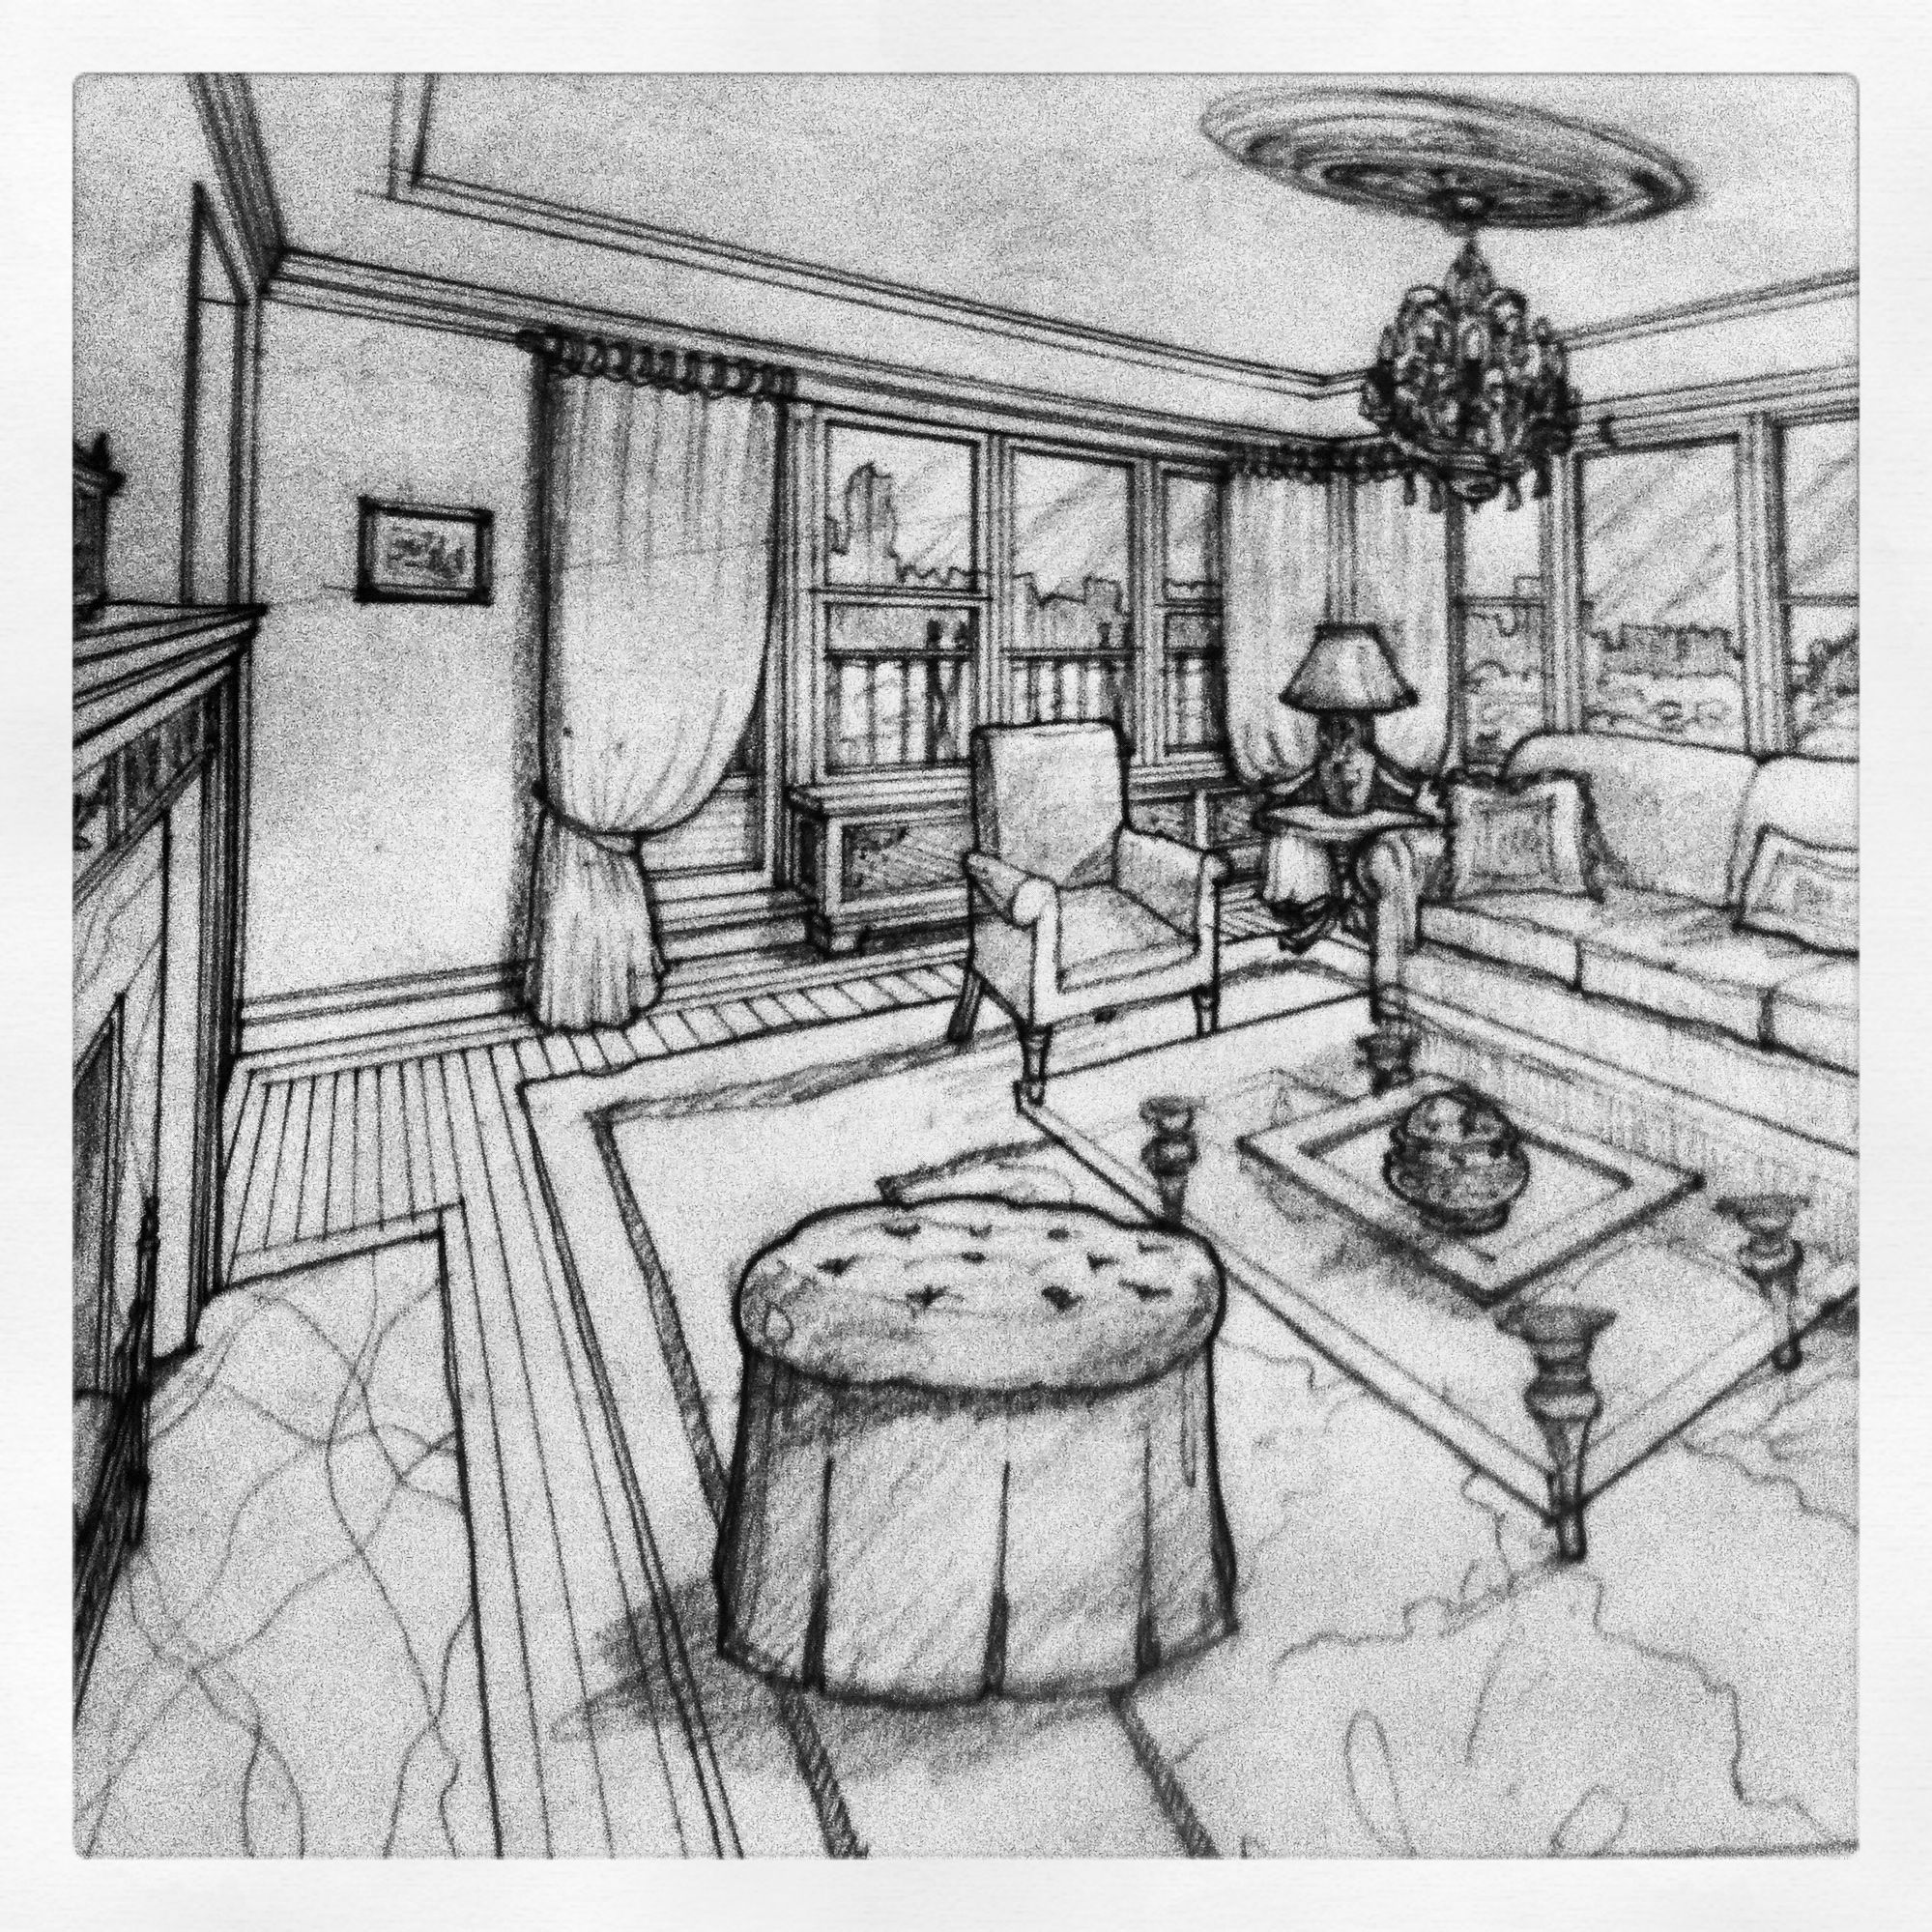 Interior pencil drawings living room study architectural drawings pencil drawings architecture drawings graphite